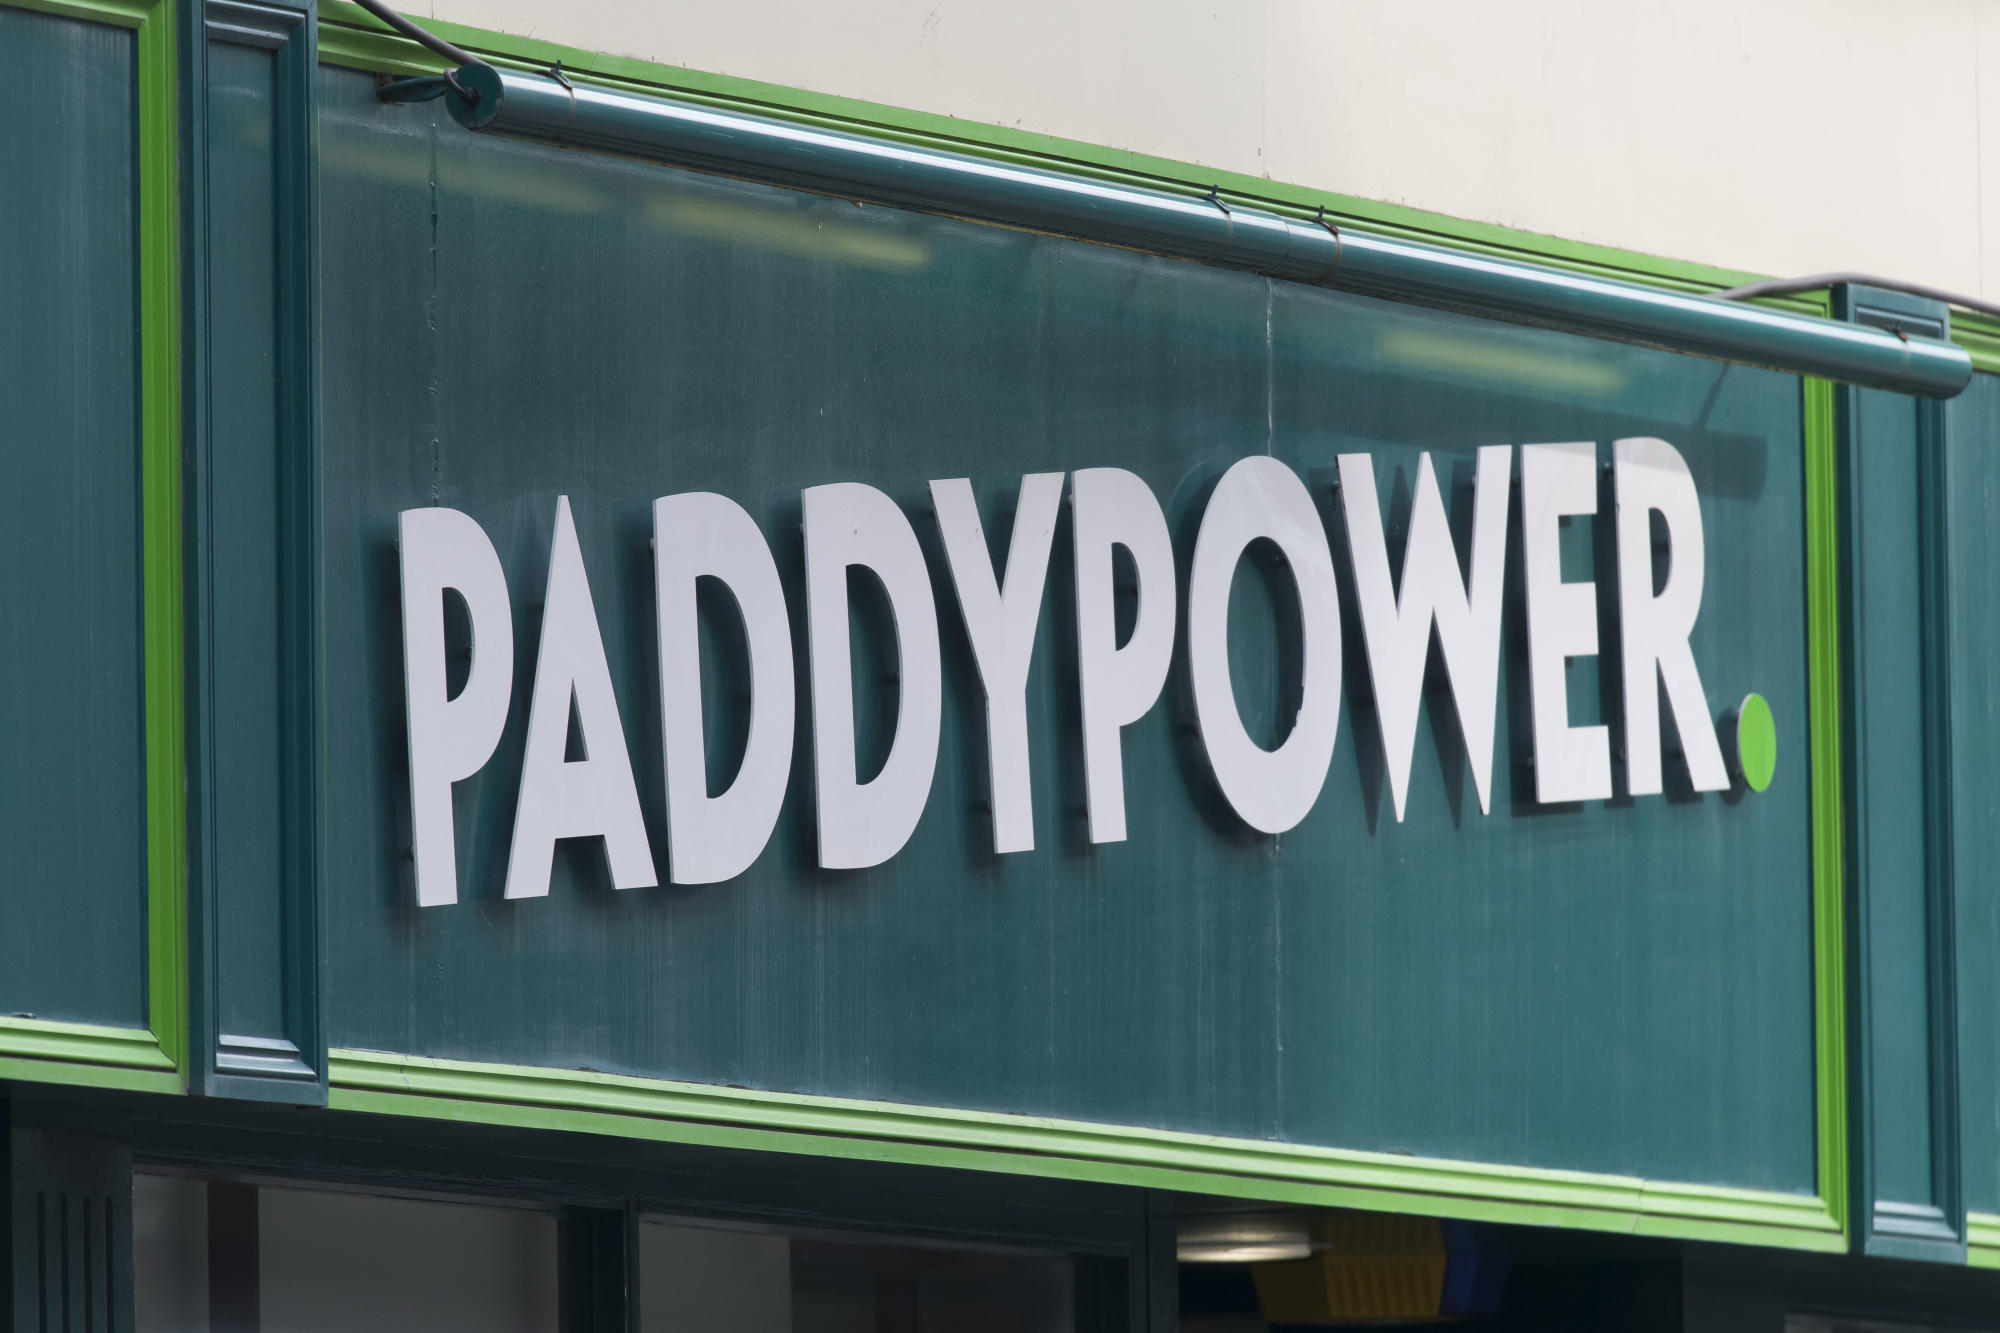 Paddy power spread betting democratic party trade binary options on mt4 trading